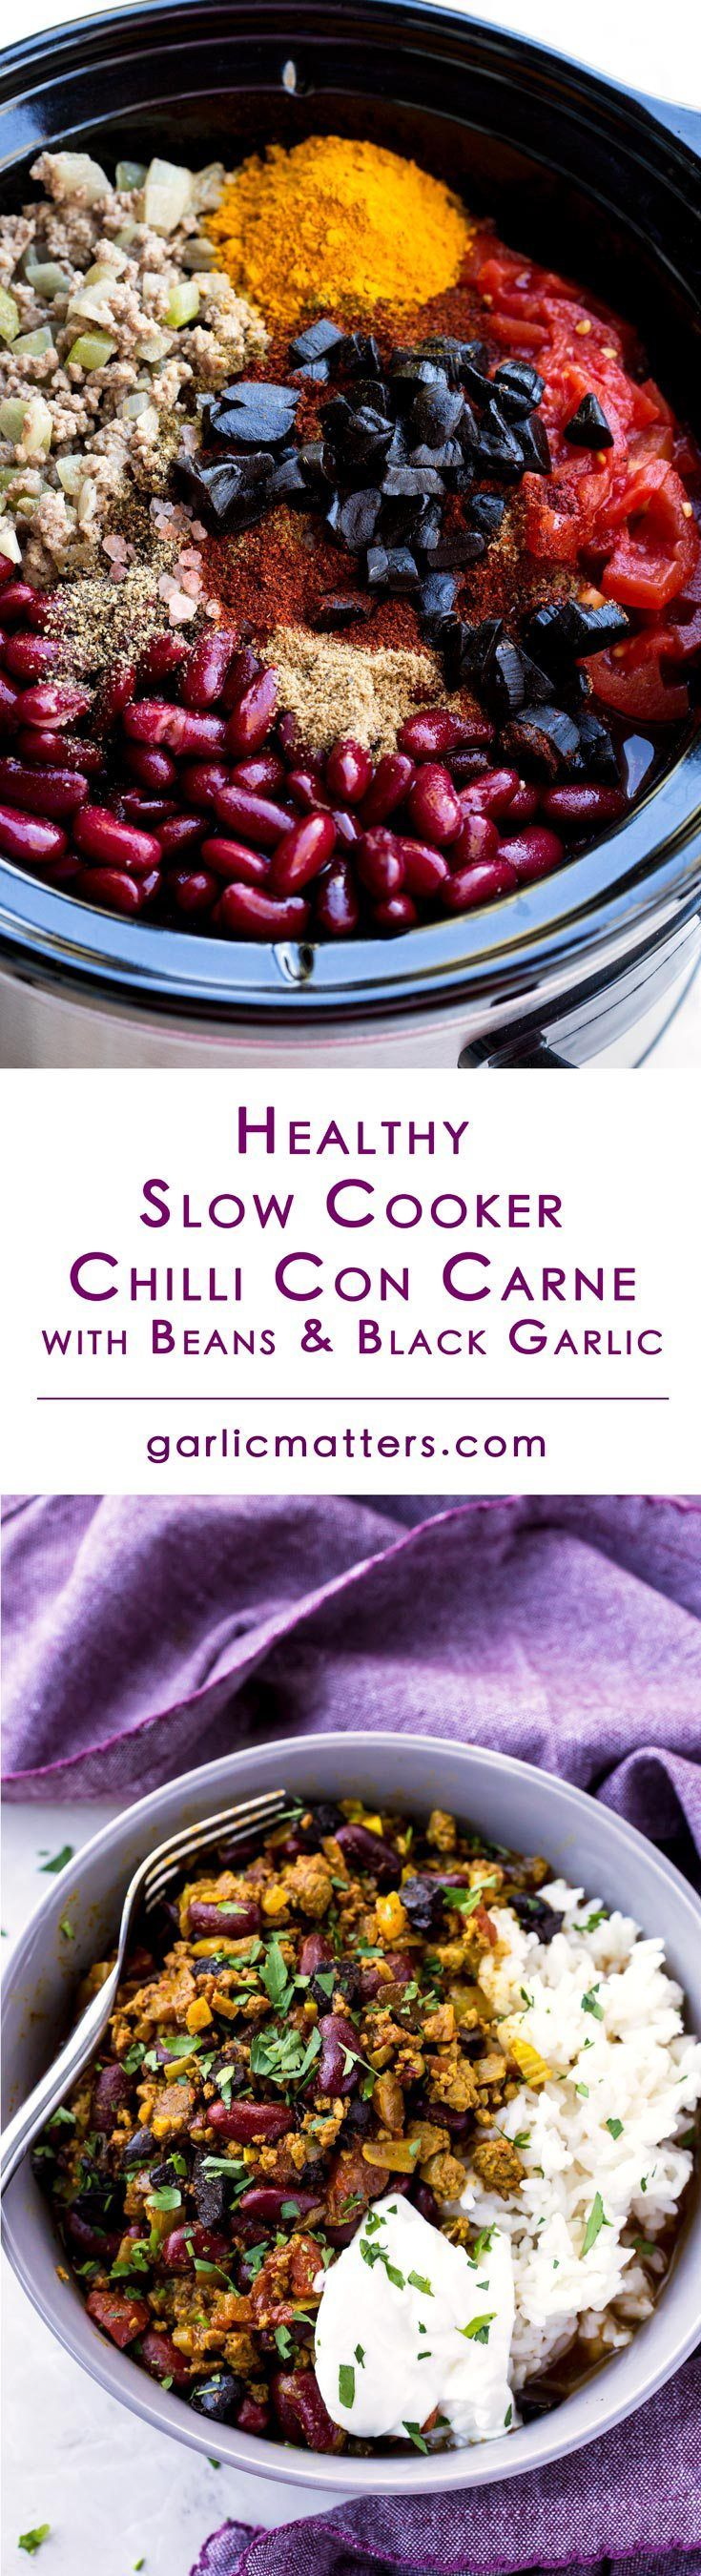 Healthy Chilli Con Carne With Beans And Black Garlic is the best slow-cooker beef chili recipe I've ever had. It is super easy and goes great with accompaniments like boiled rice or quinoa, plus sour cream, scallions or cheddar.